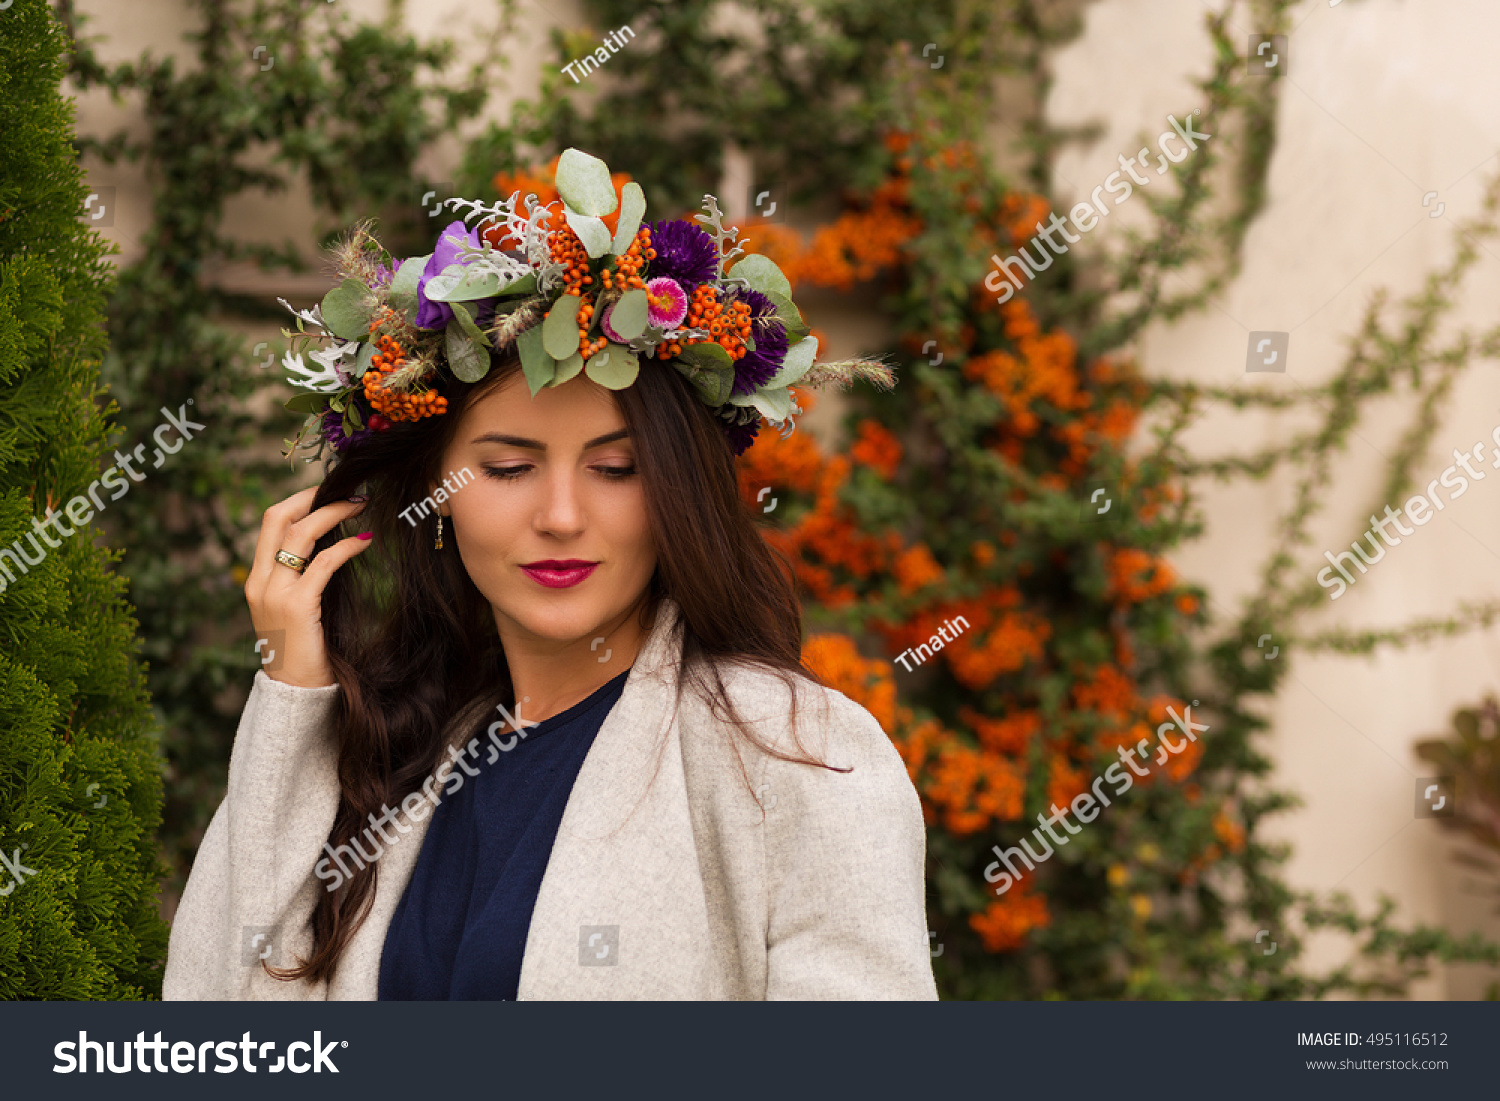 Pretty Woman In A Flower Crown In An Autumn Garden Ez Canvas